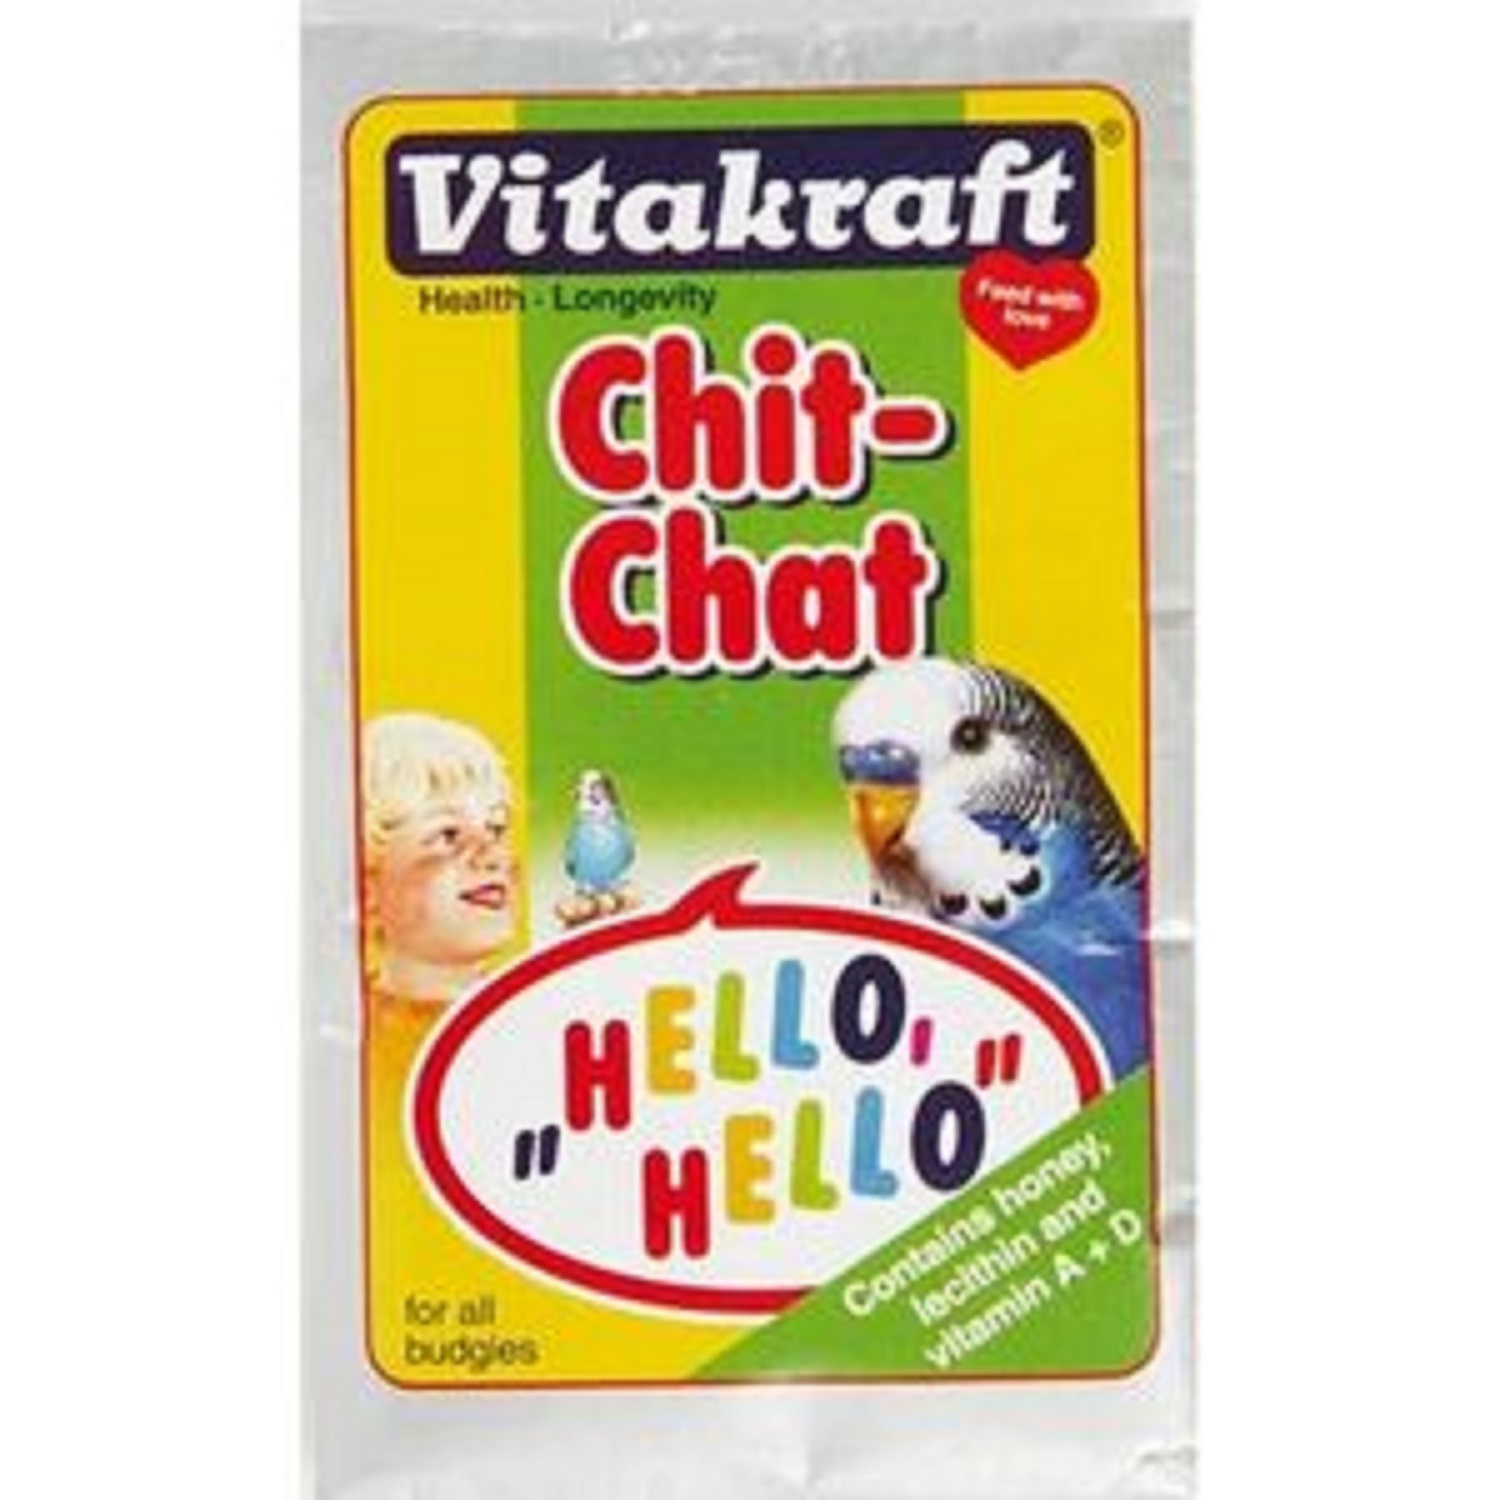 chit chat online